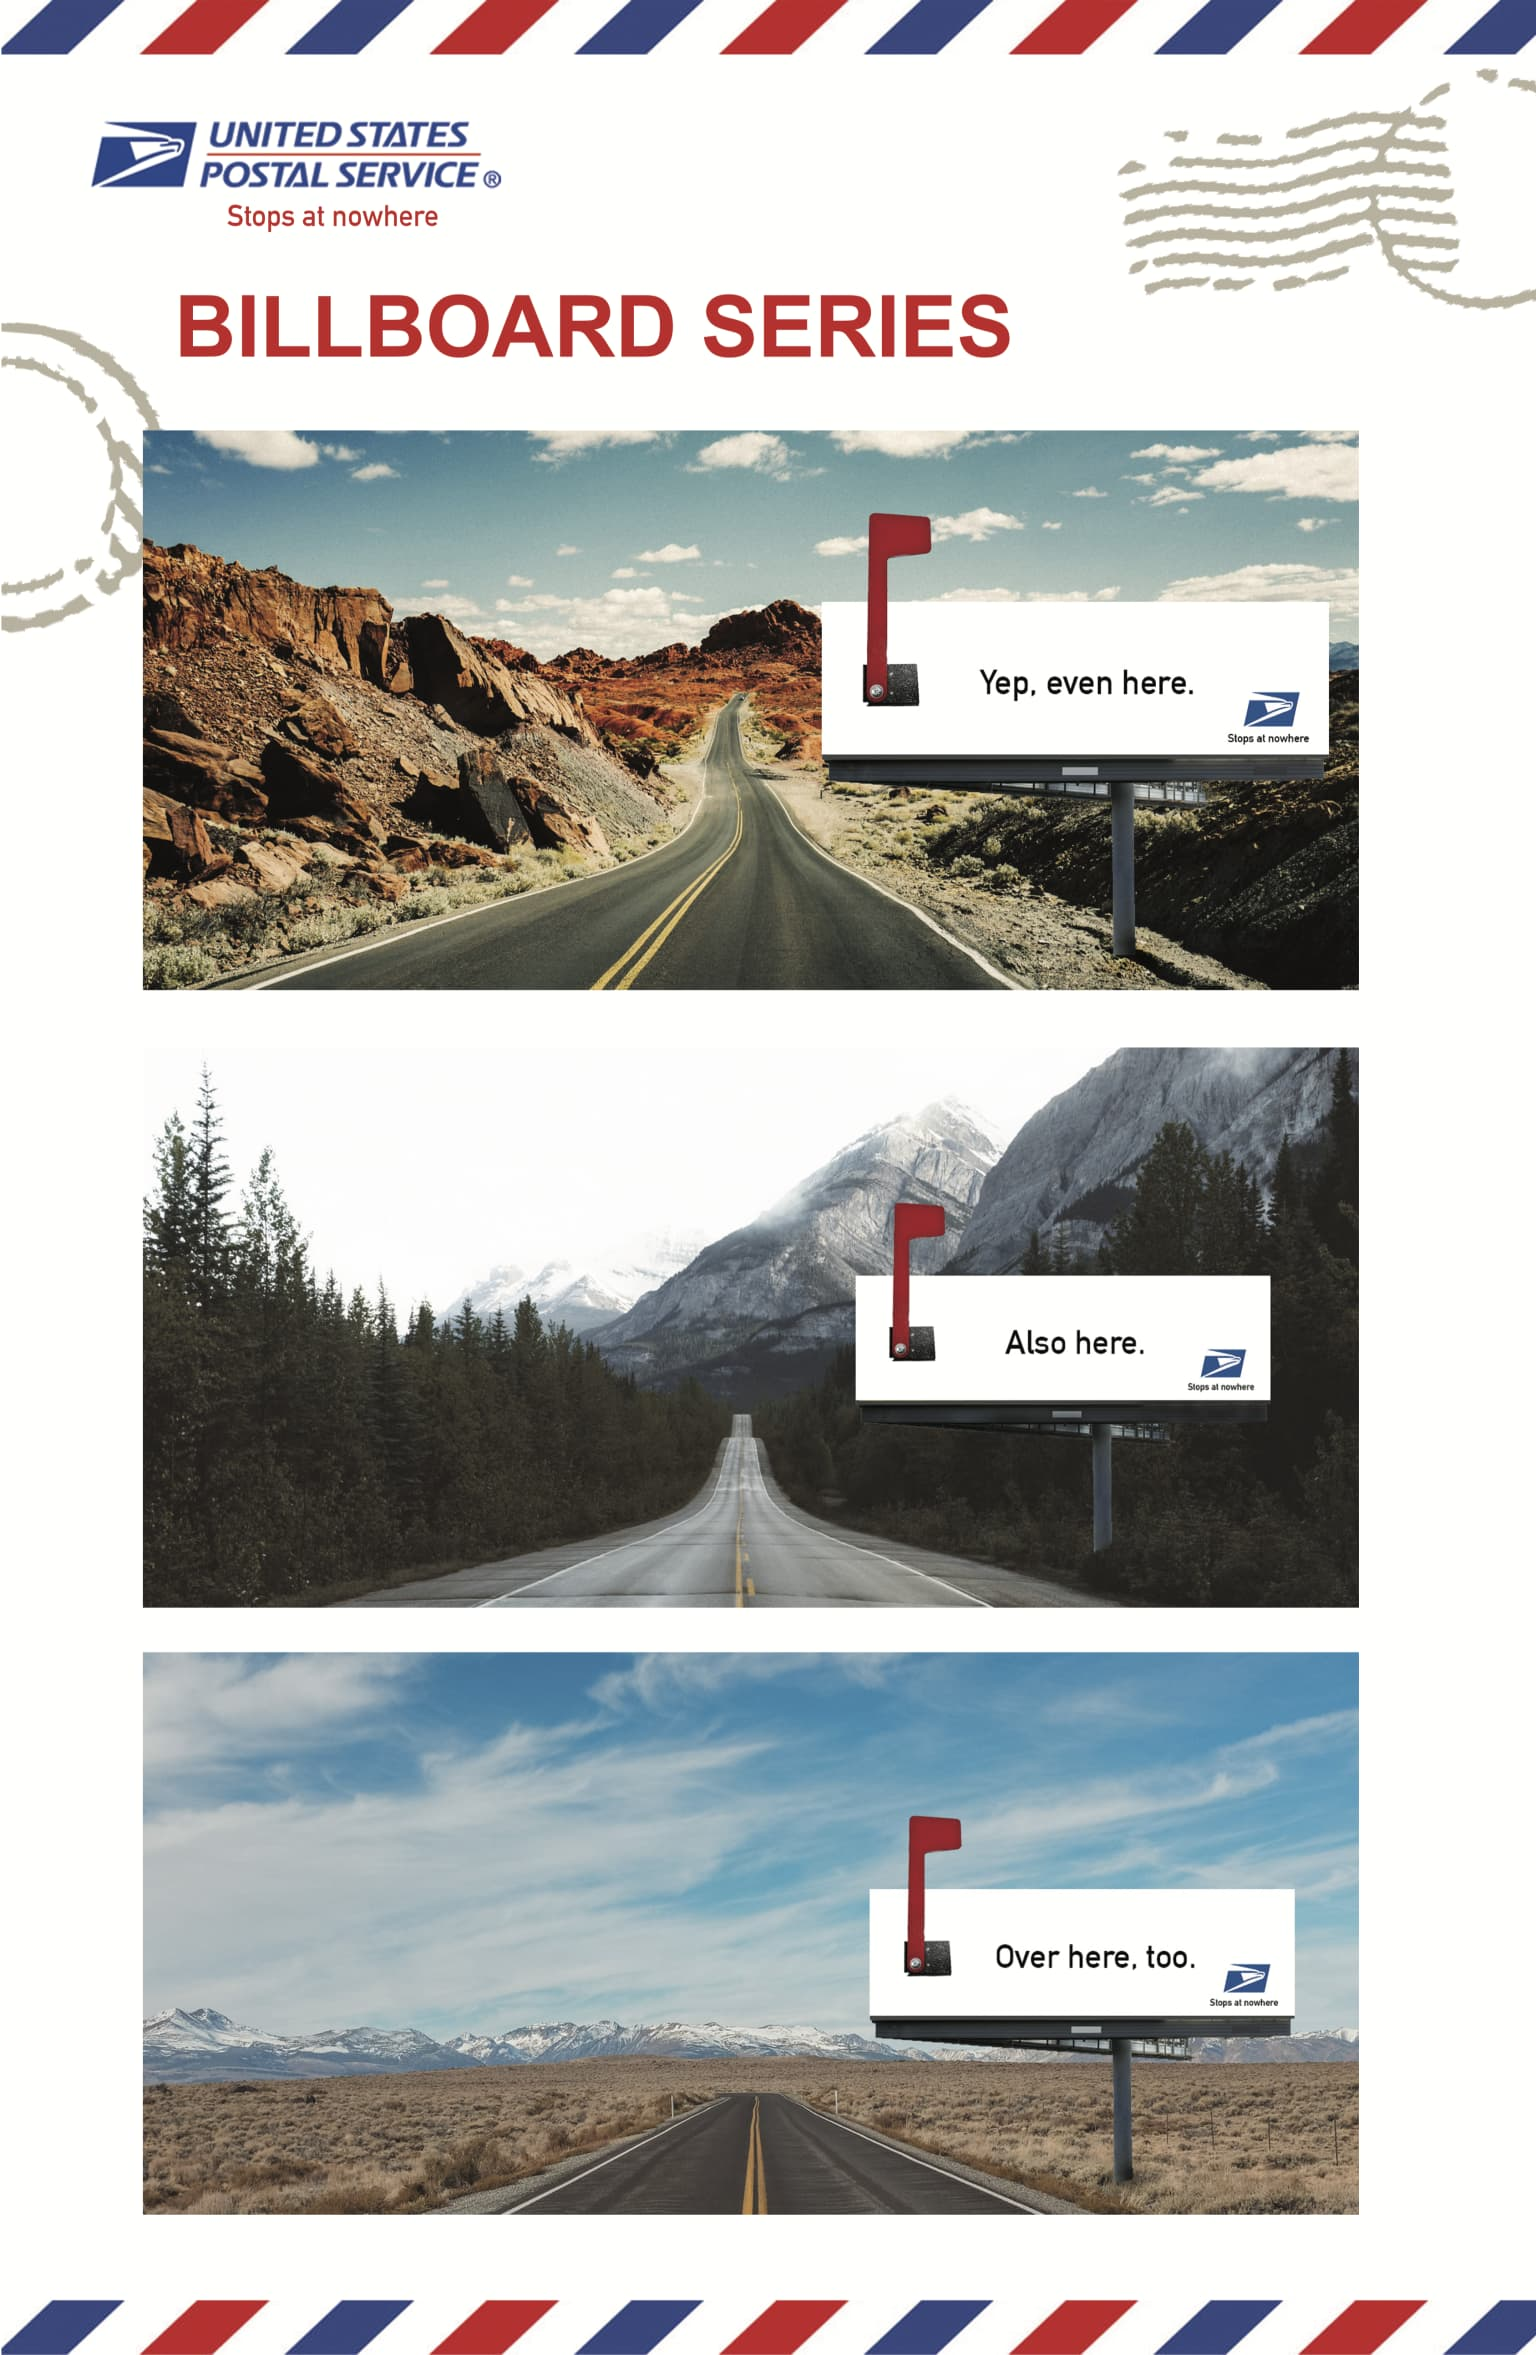 USPS: Stops at nowhere